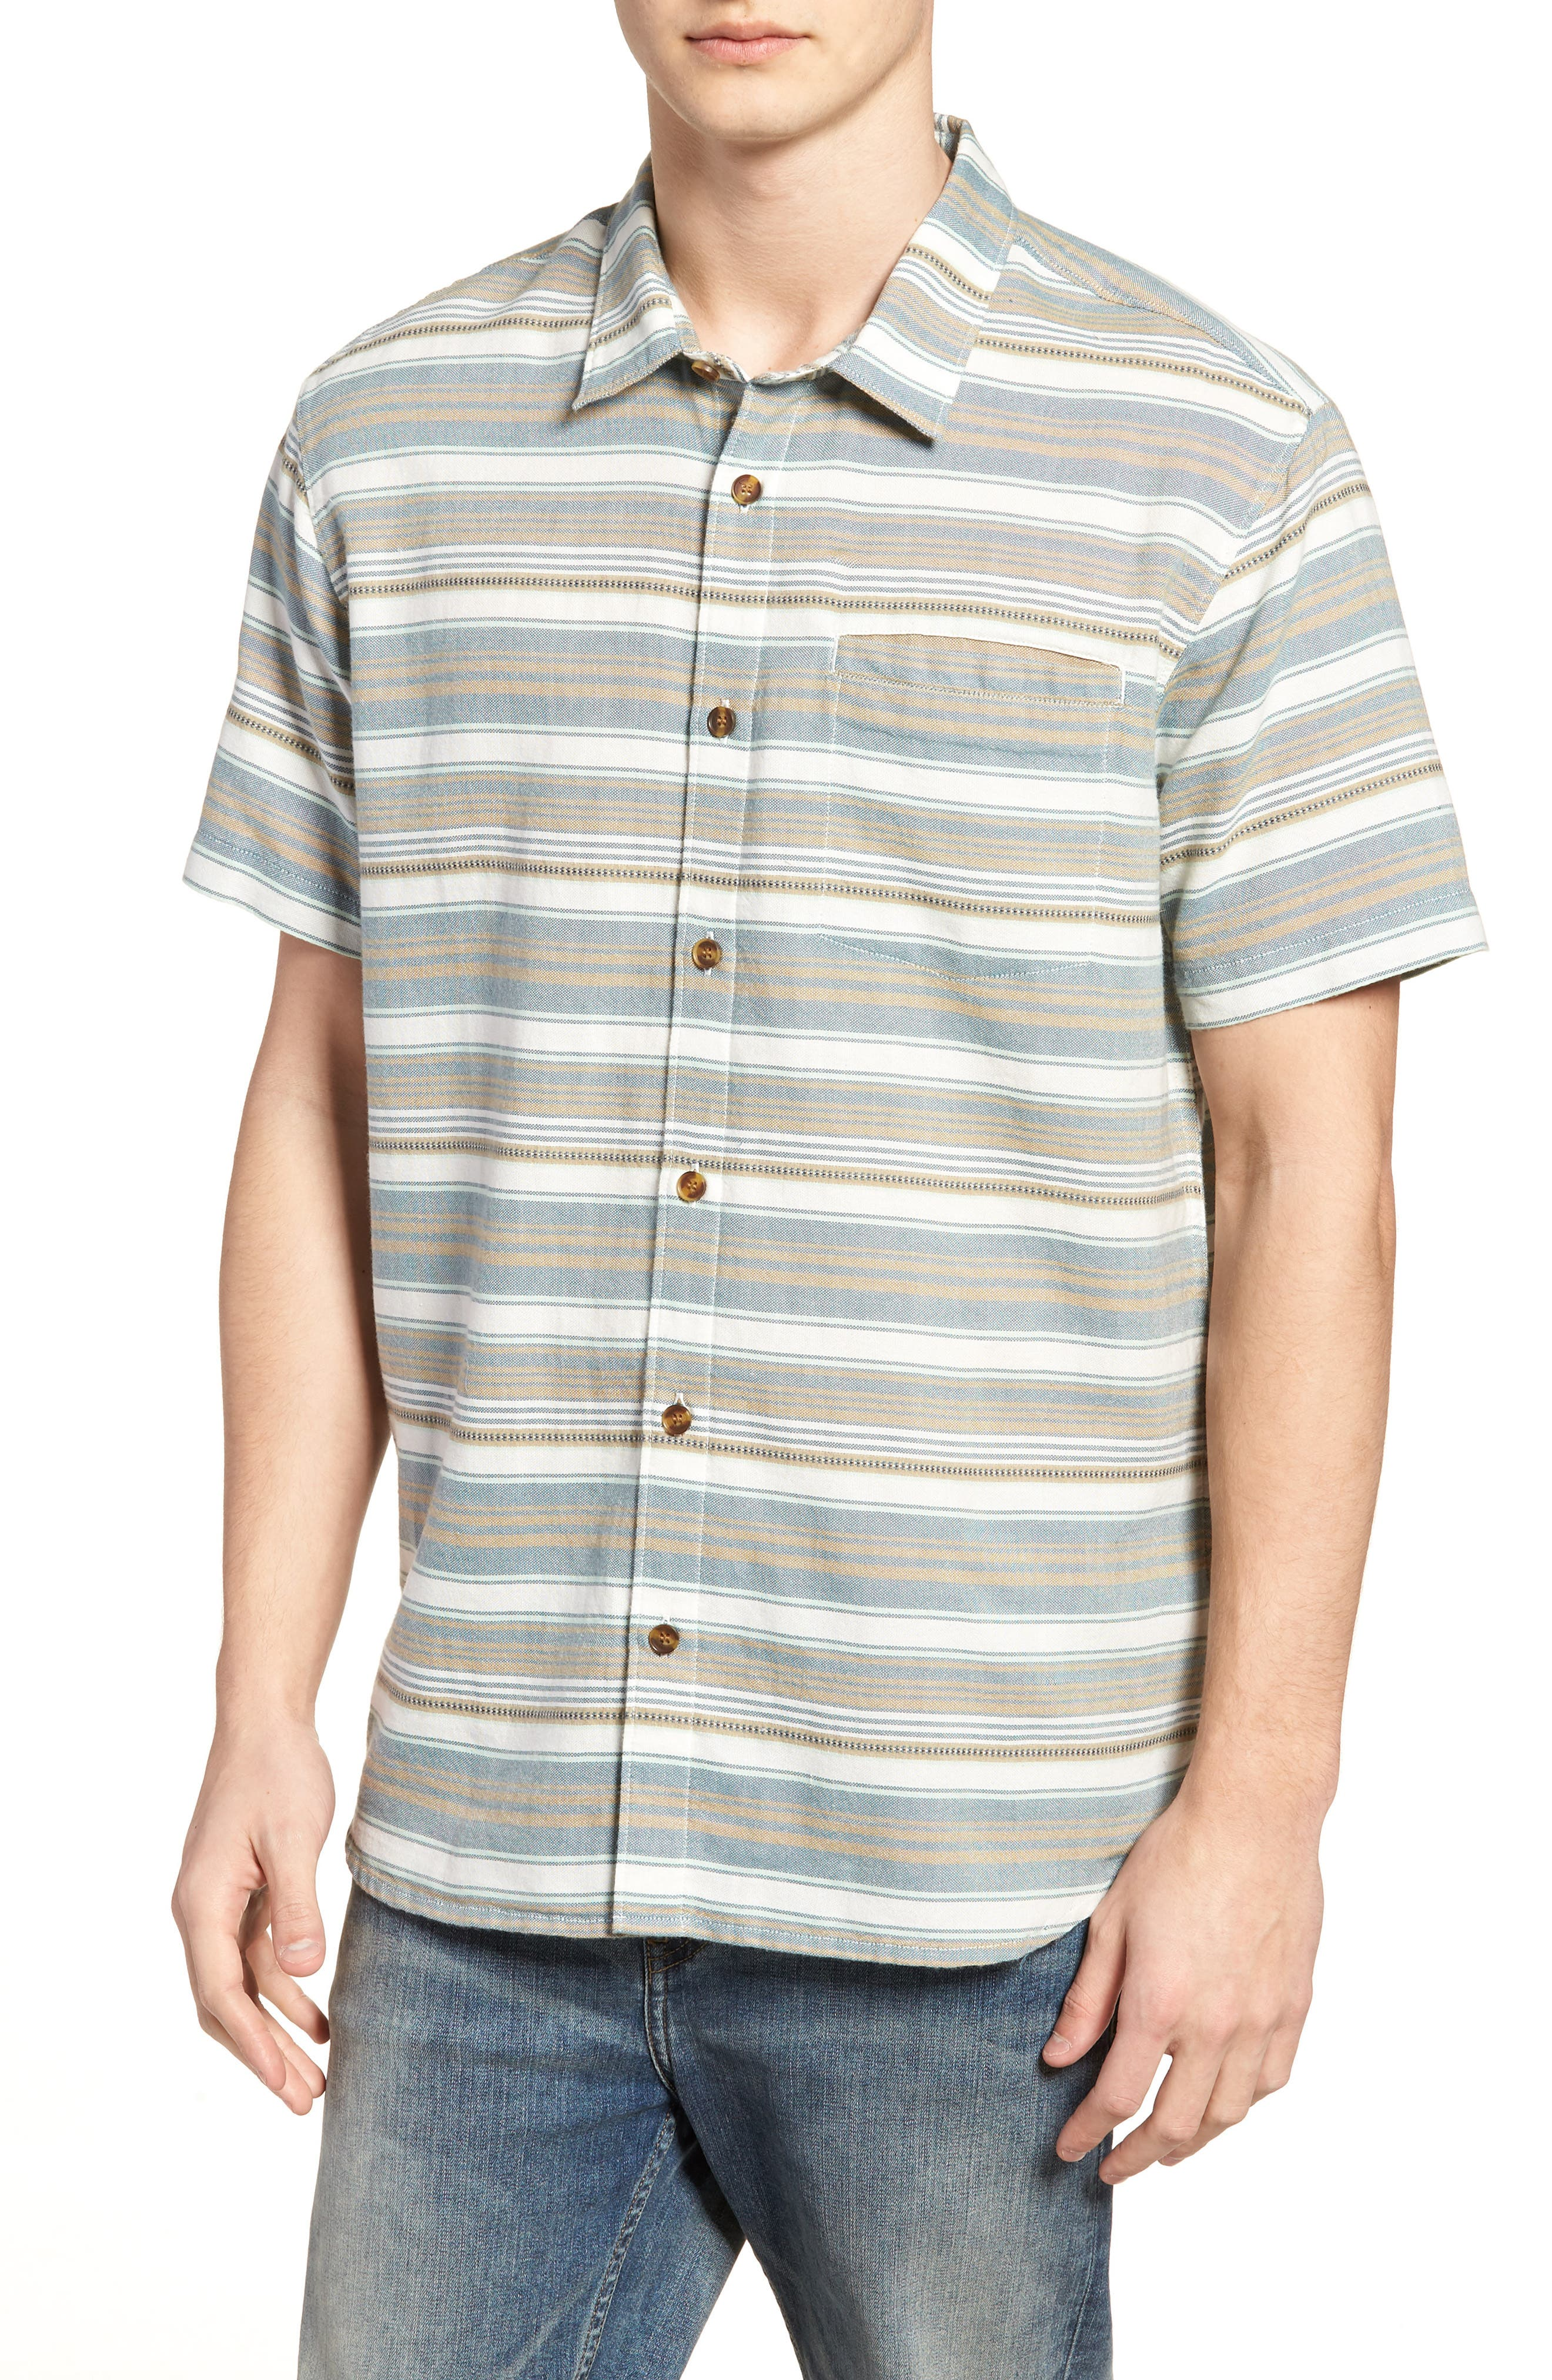 O'Neill Currington Short Sleeve Shirt